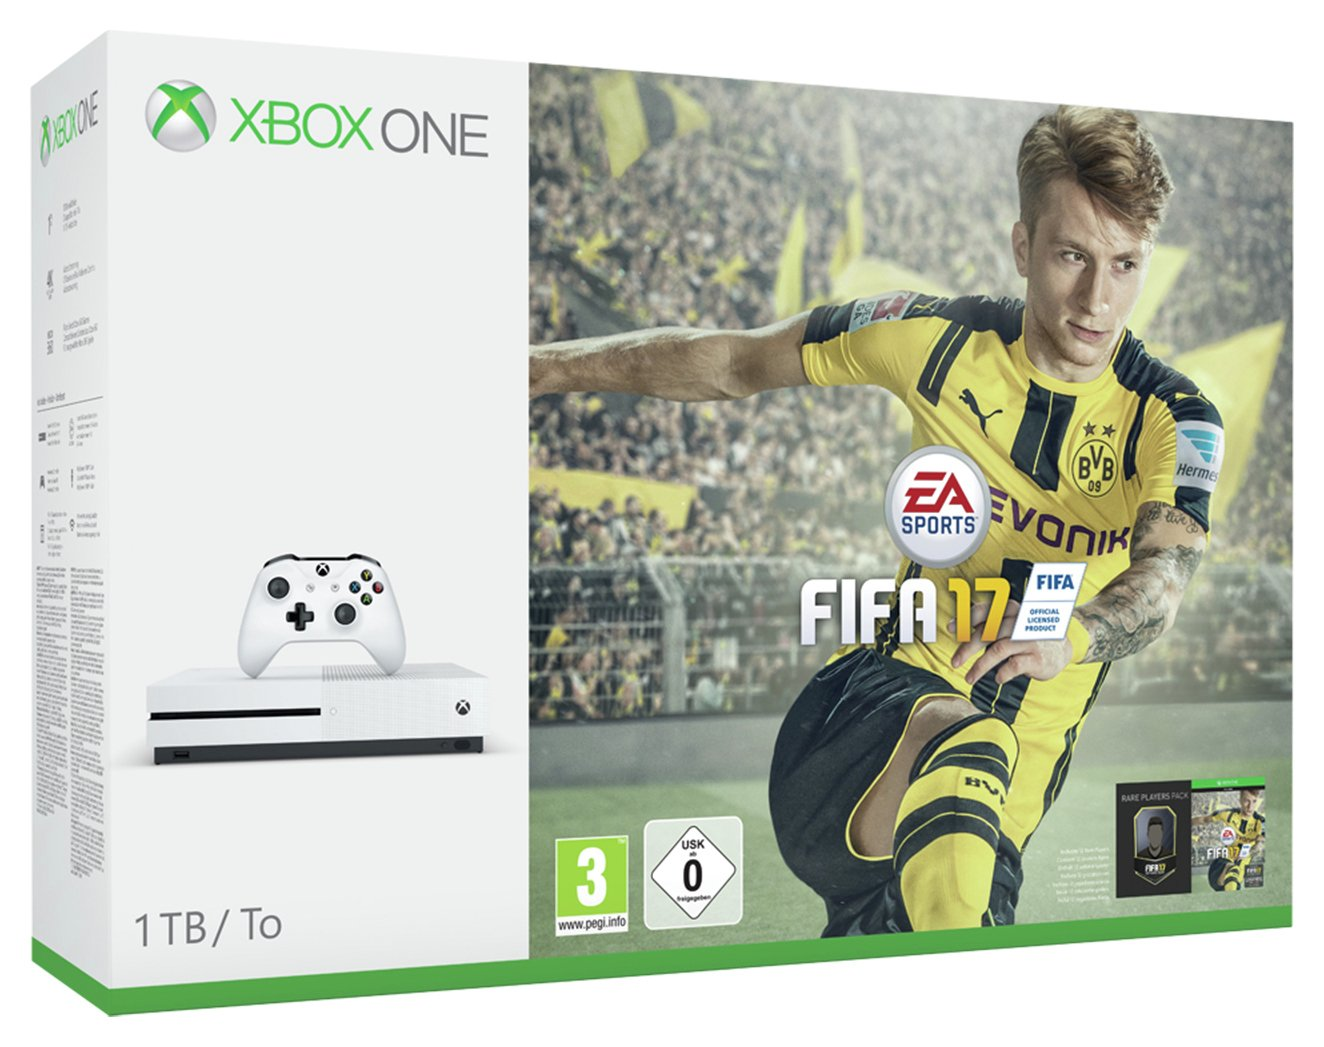 Xbox Console - One S- 1TB- with FIFA 17 Bundle.